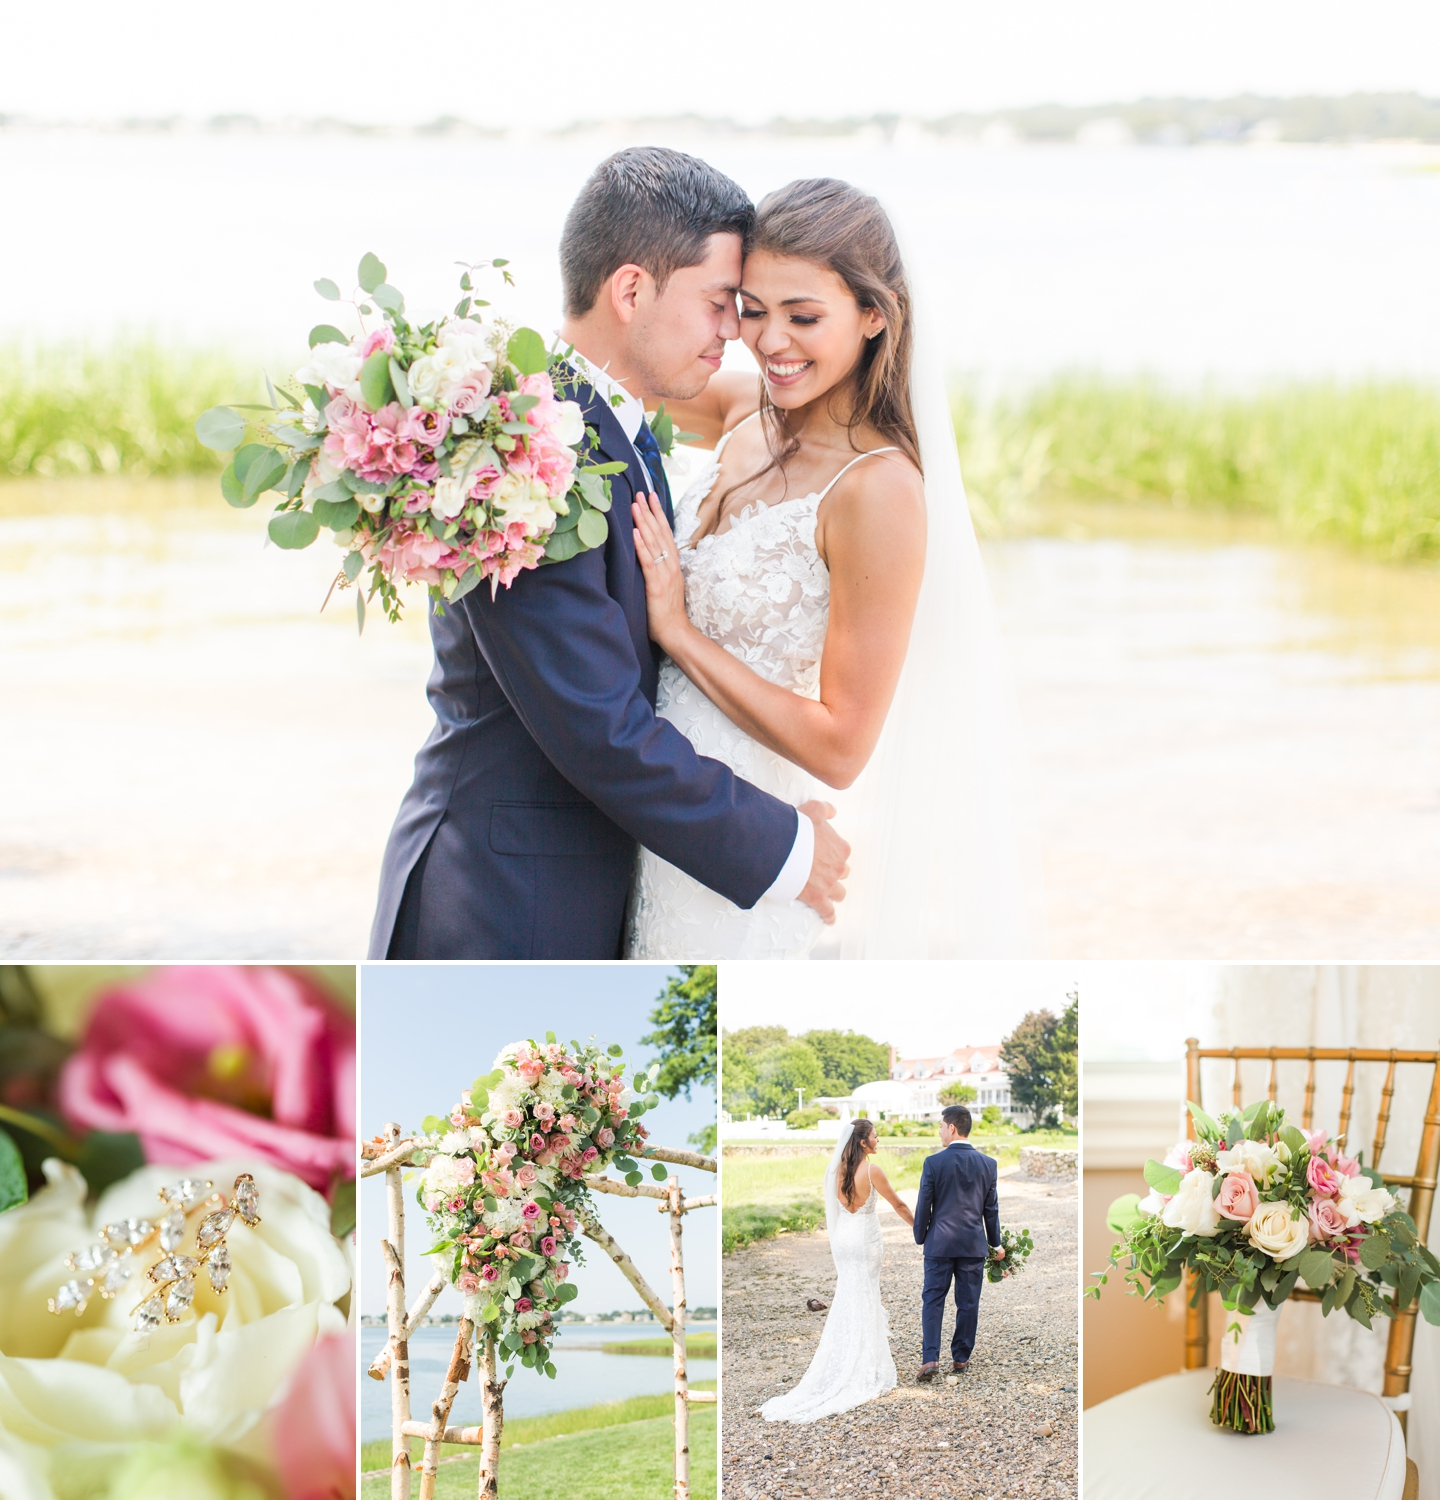 the-inn-at-longshore-wedding-westport-connecticut-photographer-mariah-alexi-shaina-lee-photography-cover-photo.jpg